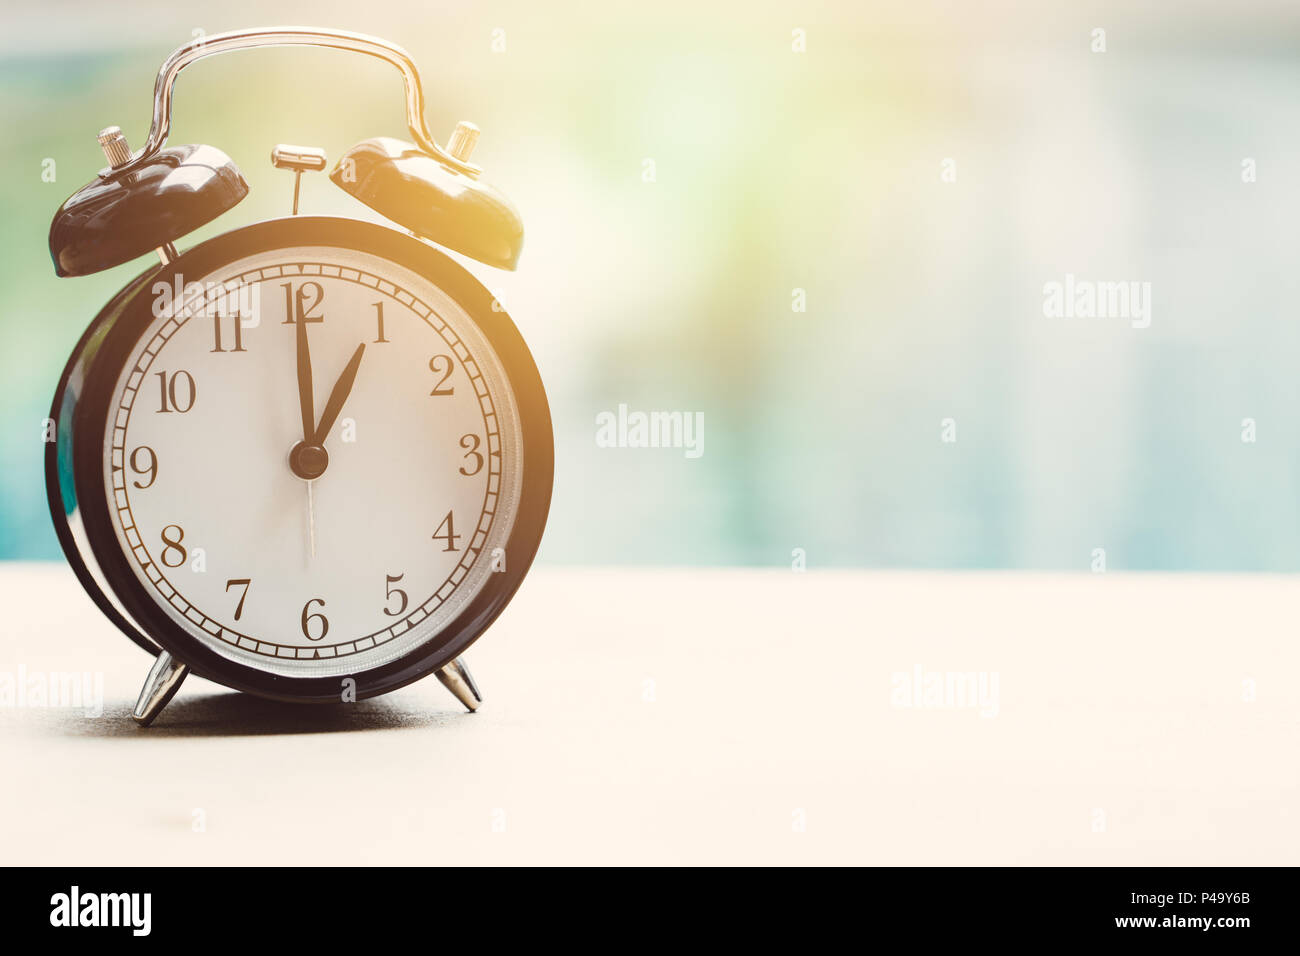 13 o'clock retro clock at the swimming pool outdoor relax time holiday time concept. - Stock Image